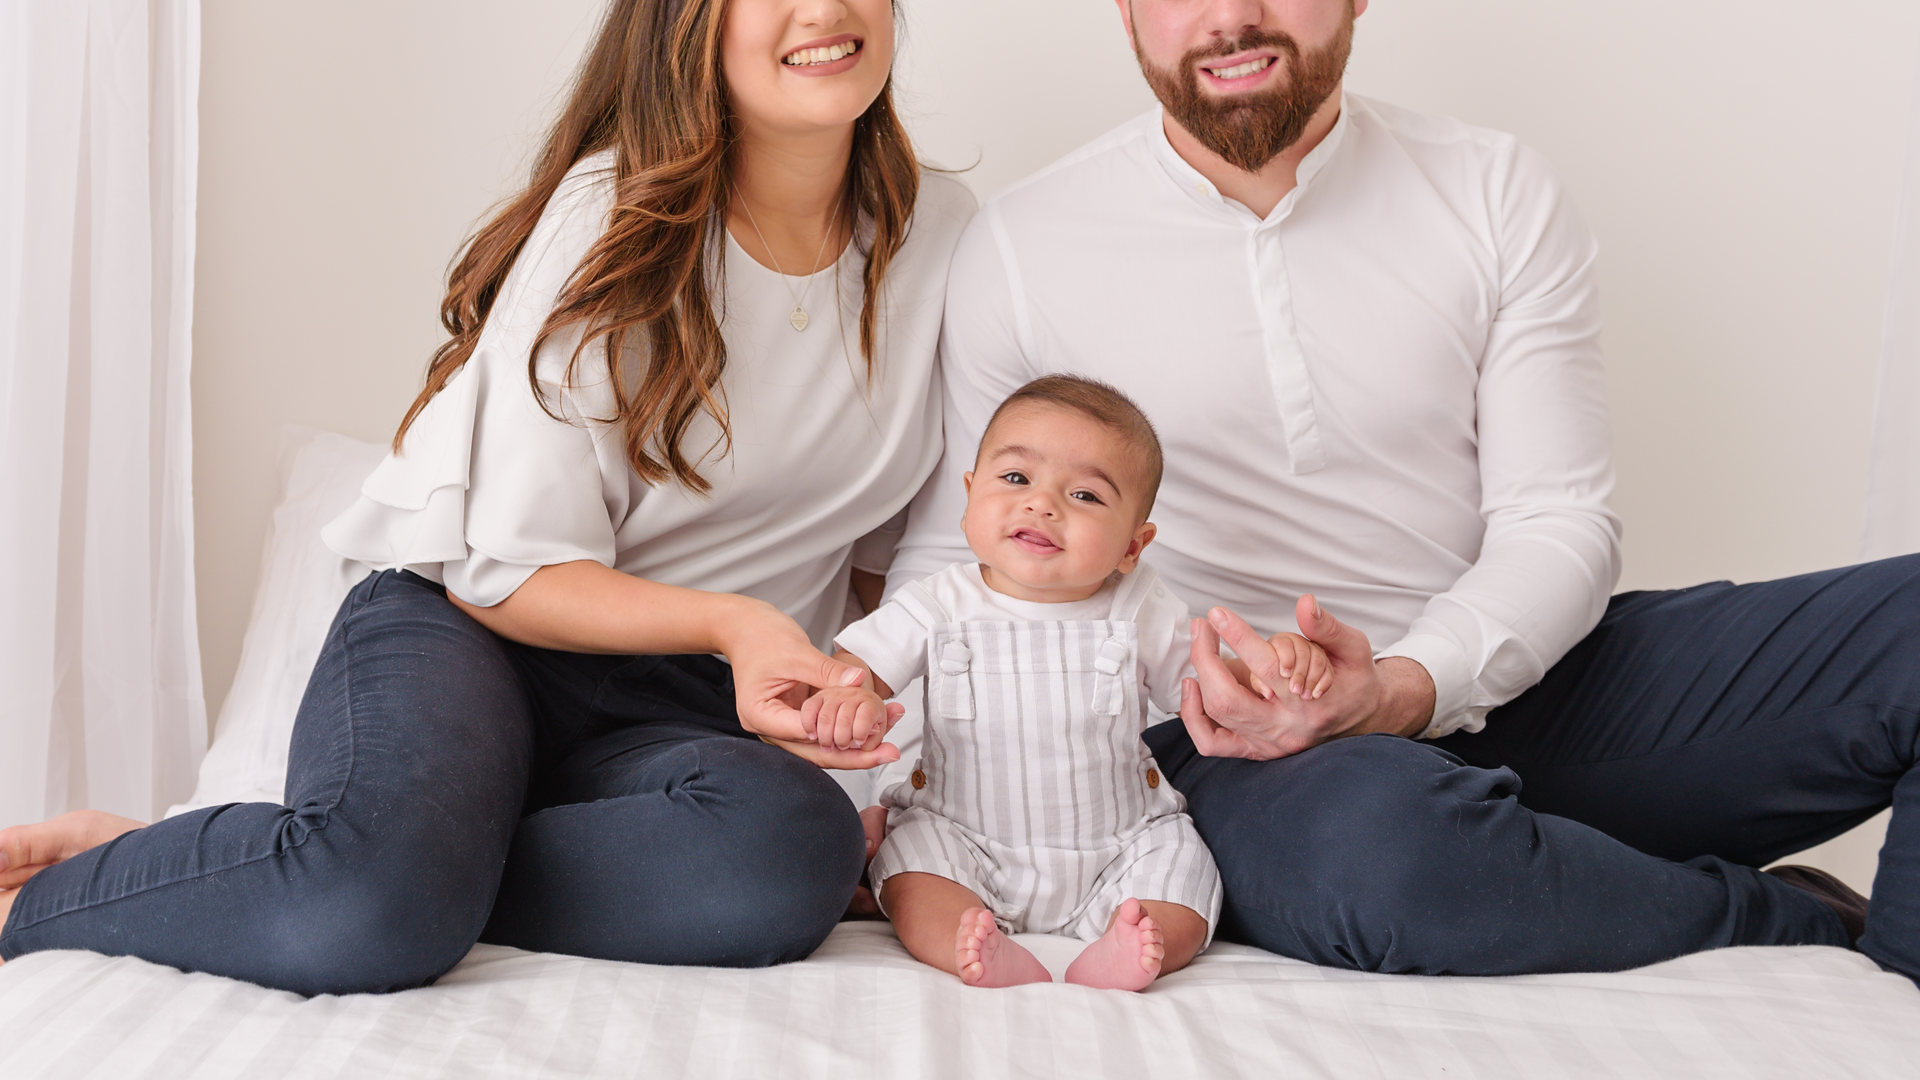 Family and baby posing on bed for baby photography session in wiltshire